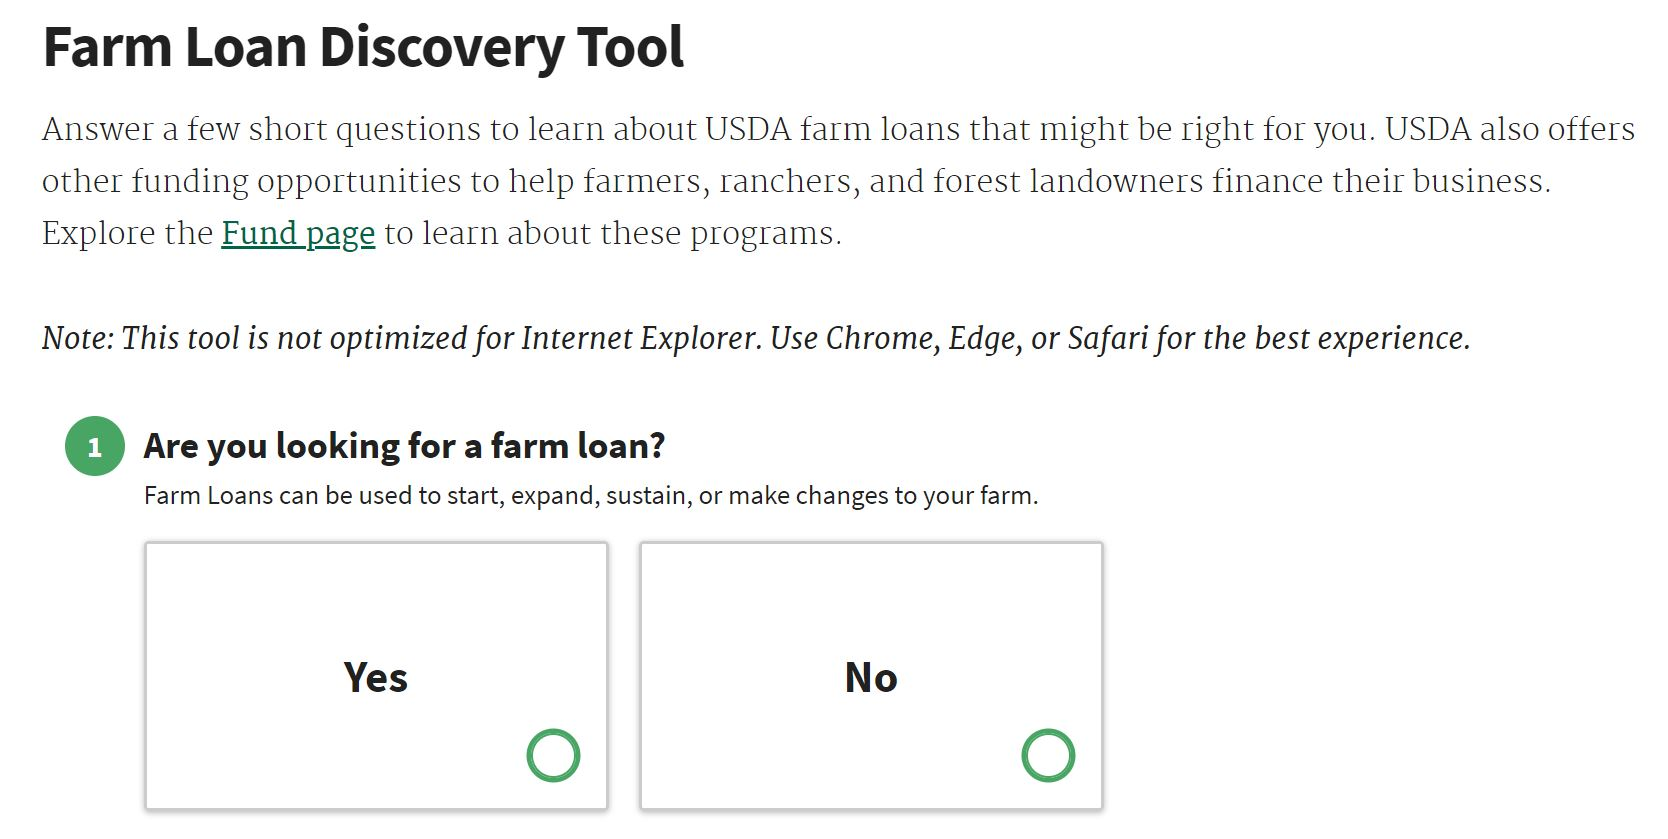 Farm Loan Discovery Tool Question 1